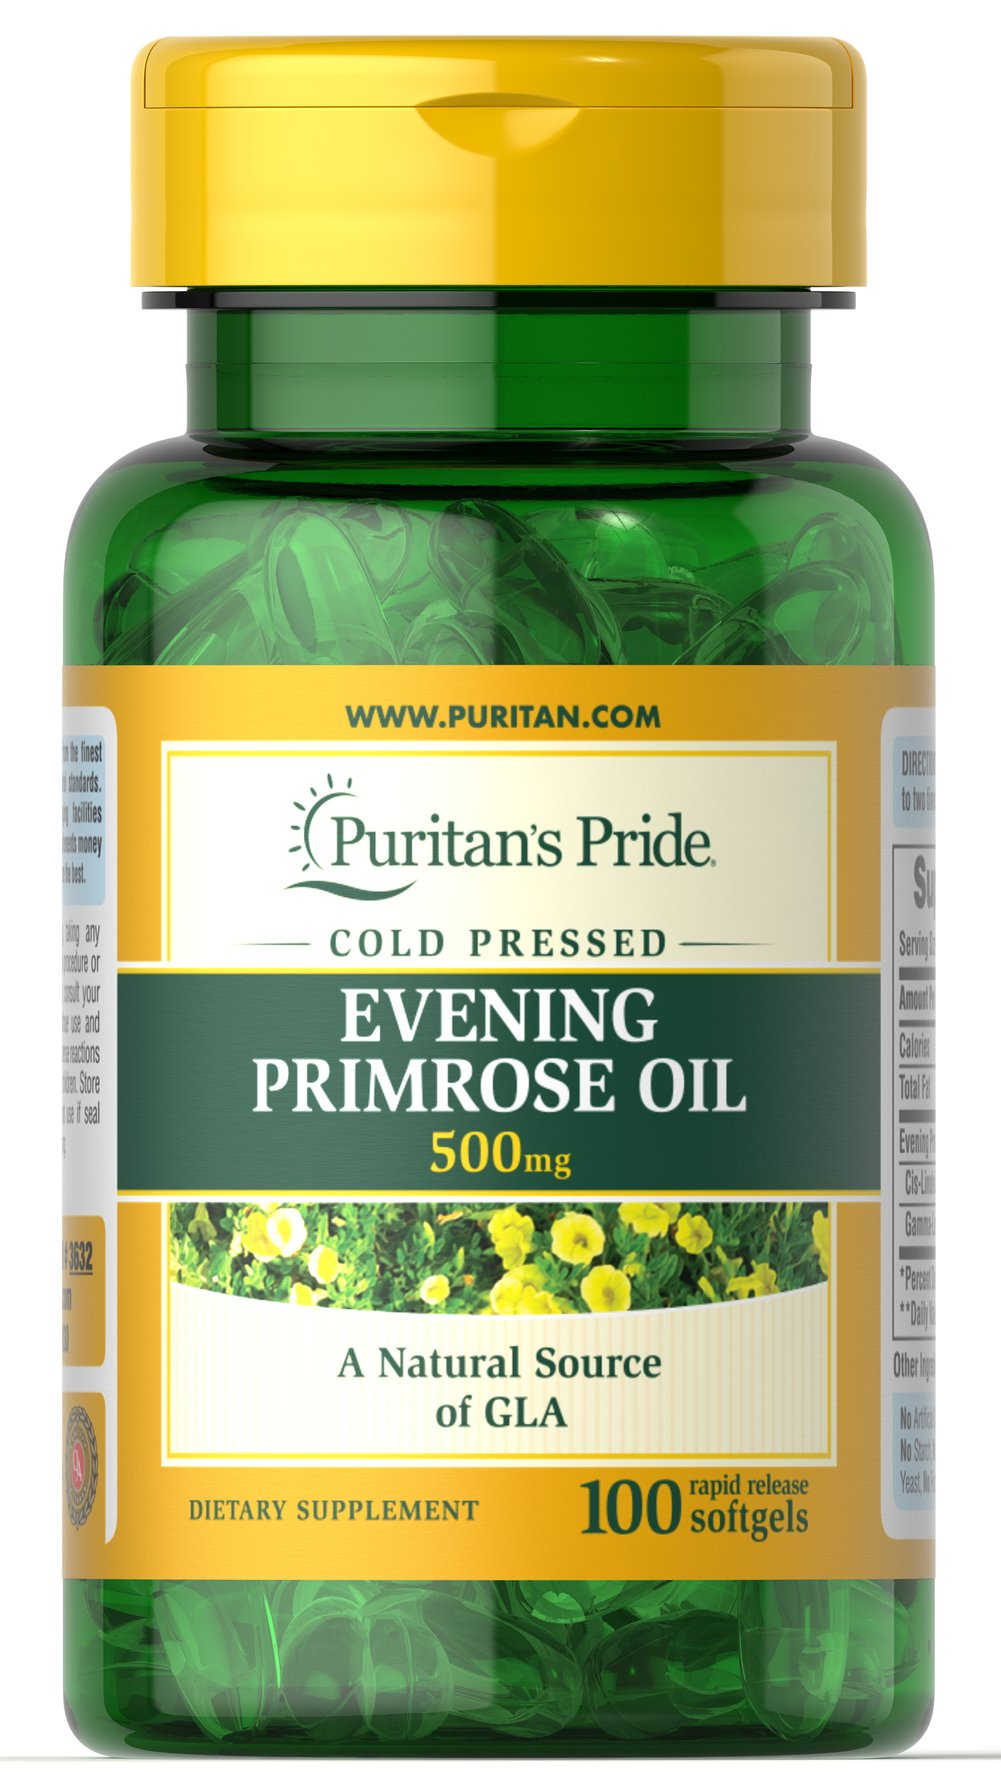 Evening Primrose Oil 500 mg with GLA <p>For centuries, EPO has been used to provide nutritional support for women with premenstrual syndrome (PMS); it may also play a role in promoting smooth, healthy-looking skin.**</p><p>These easy-to-swallow softgels are a natural source of GLA (Gamma Linolenic Acid). Our EPO contains one of the most biologically active forms of this Omega-6 fatty acid available today.</p>  100 Softgels 500 mg $13.99